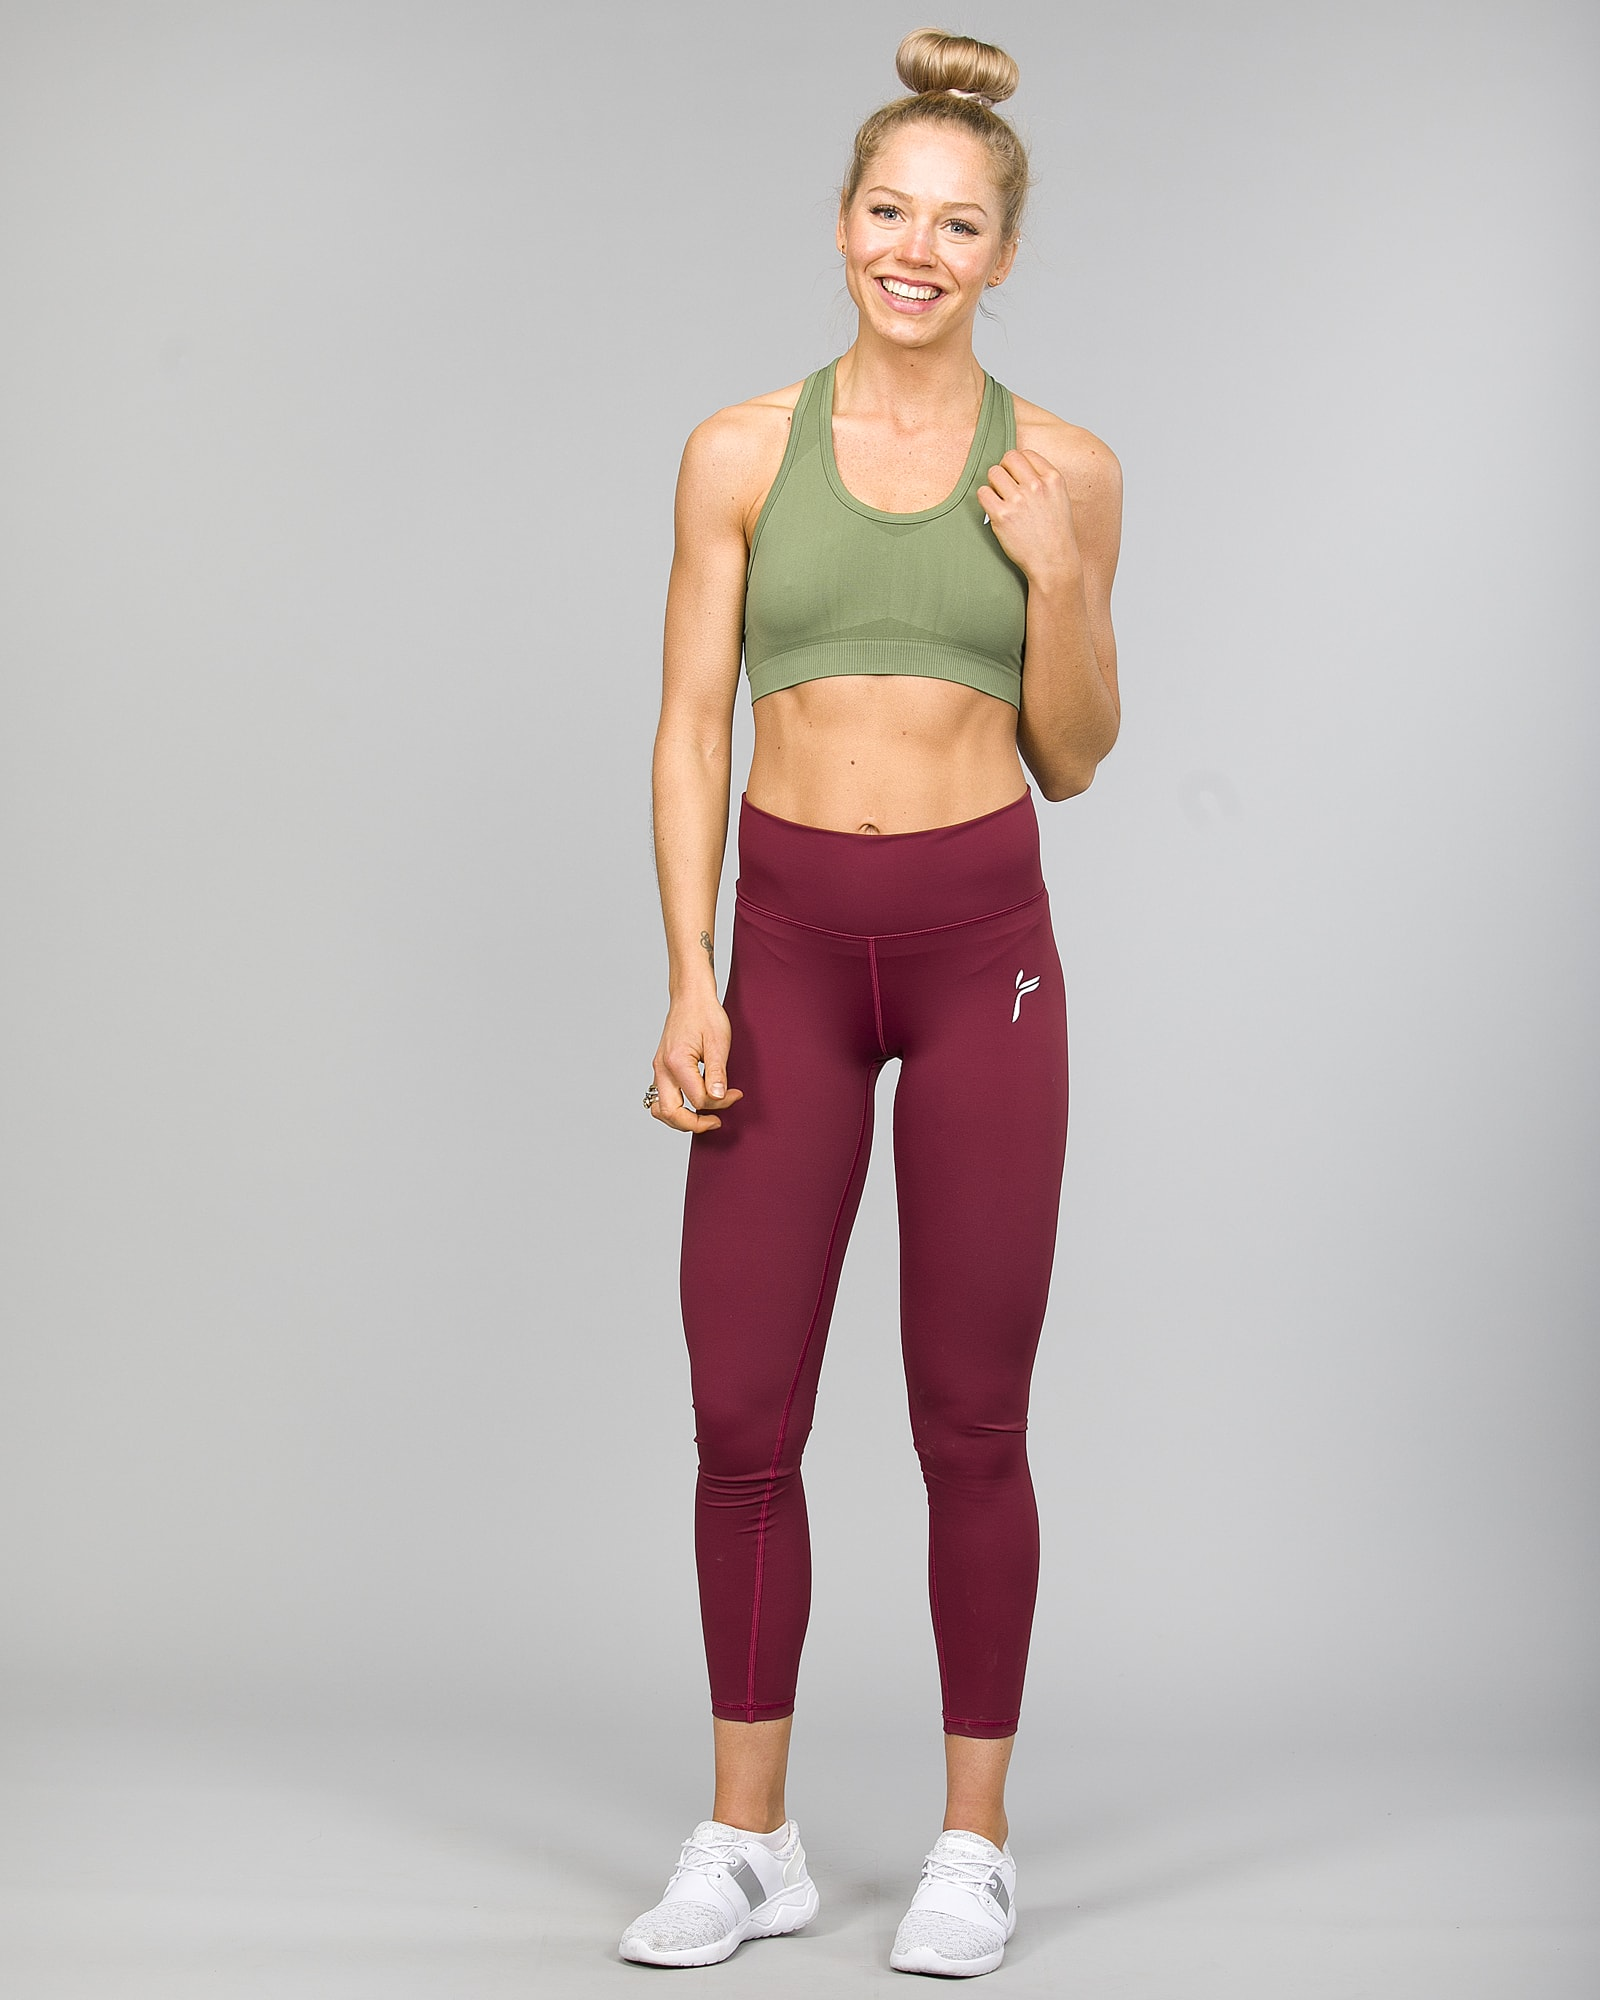 Famme Essential High Waist Legging - Tawny Port ehwt-tp and Drop It Sports Bra Army green disb-ag